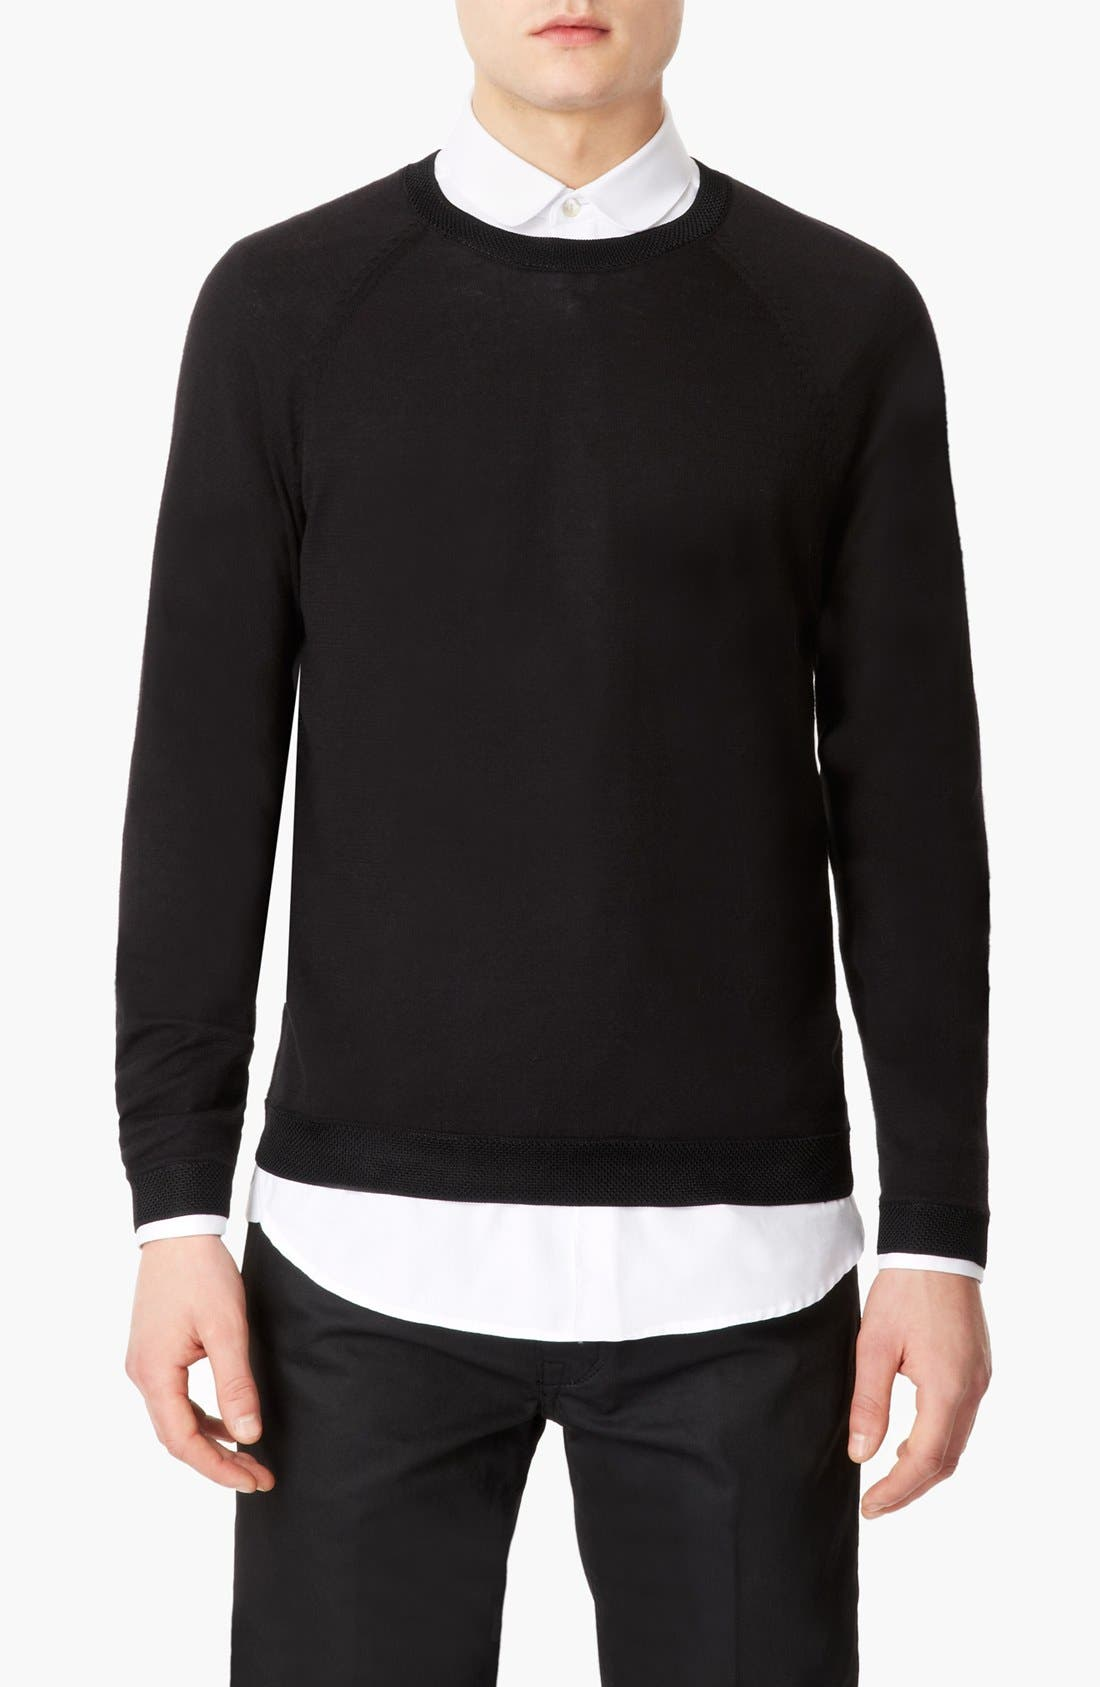 Alternate Image 1 Selected - Topman 'Lux Collection' Mesh Cotton Crewneck Sweater